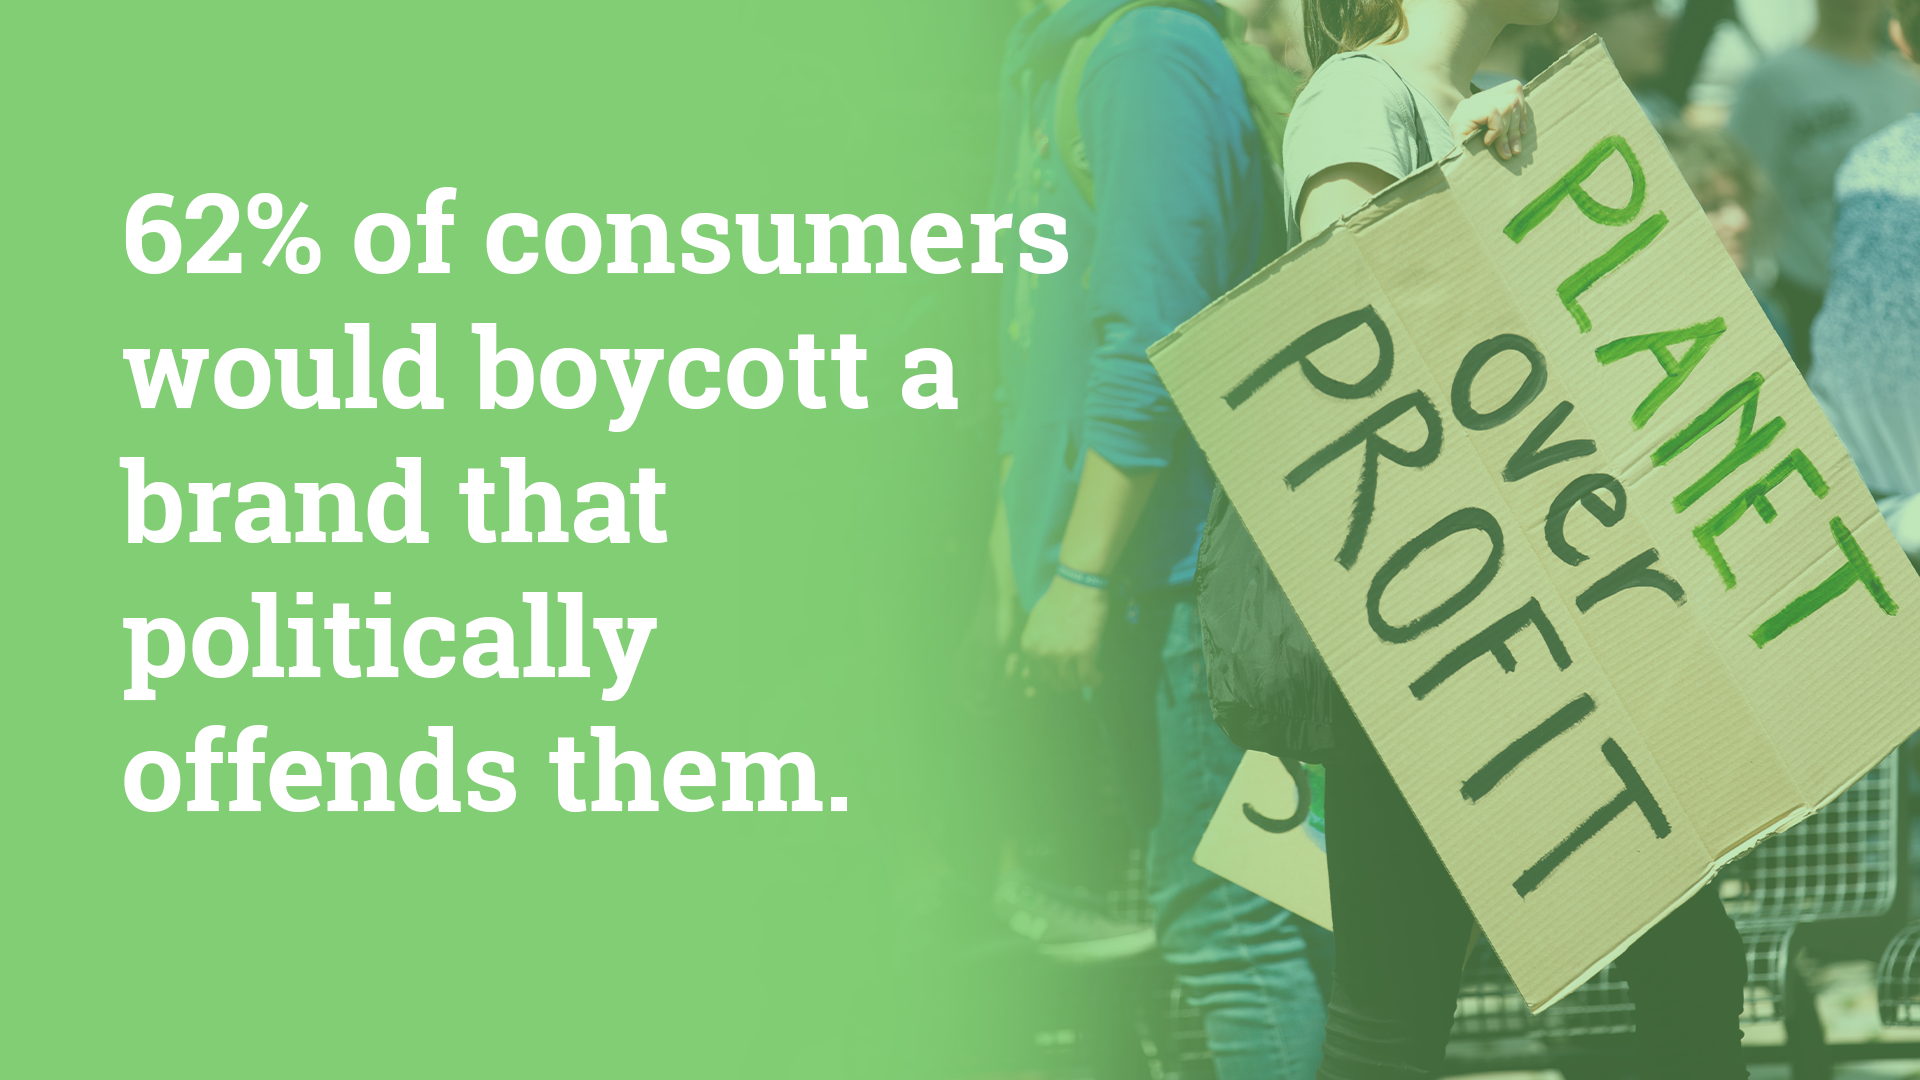 Consumers_boycott_brand_politcally_offensive